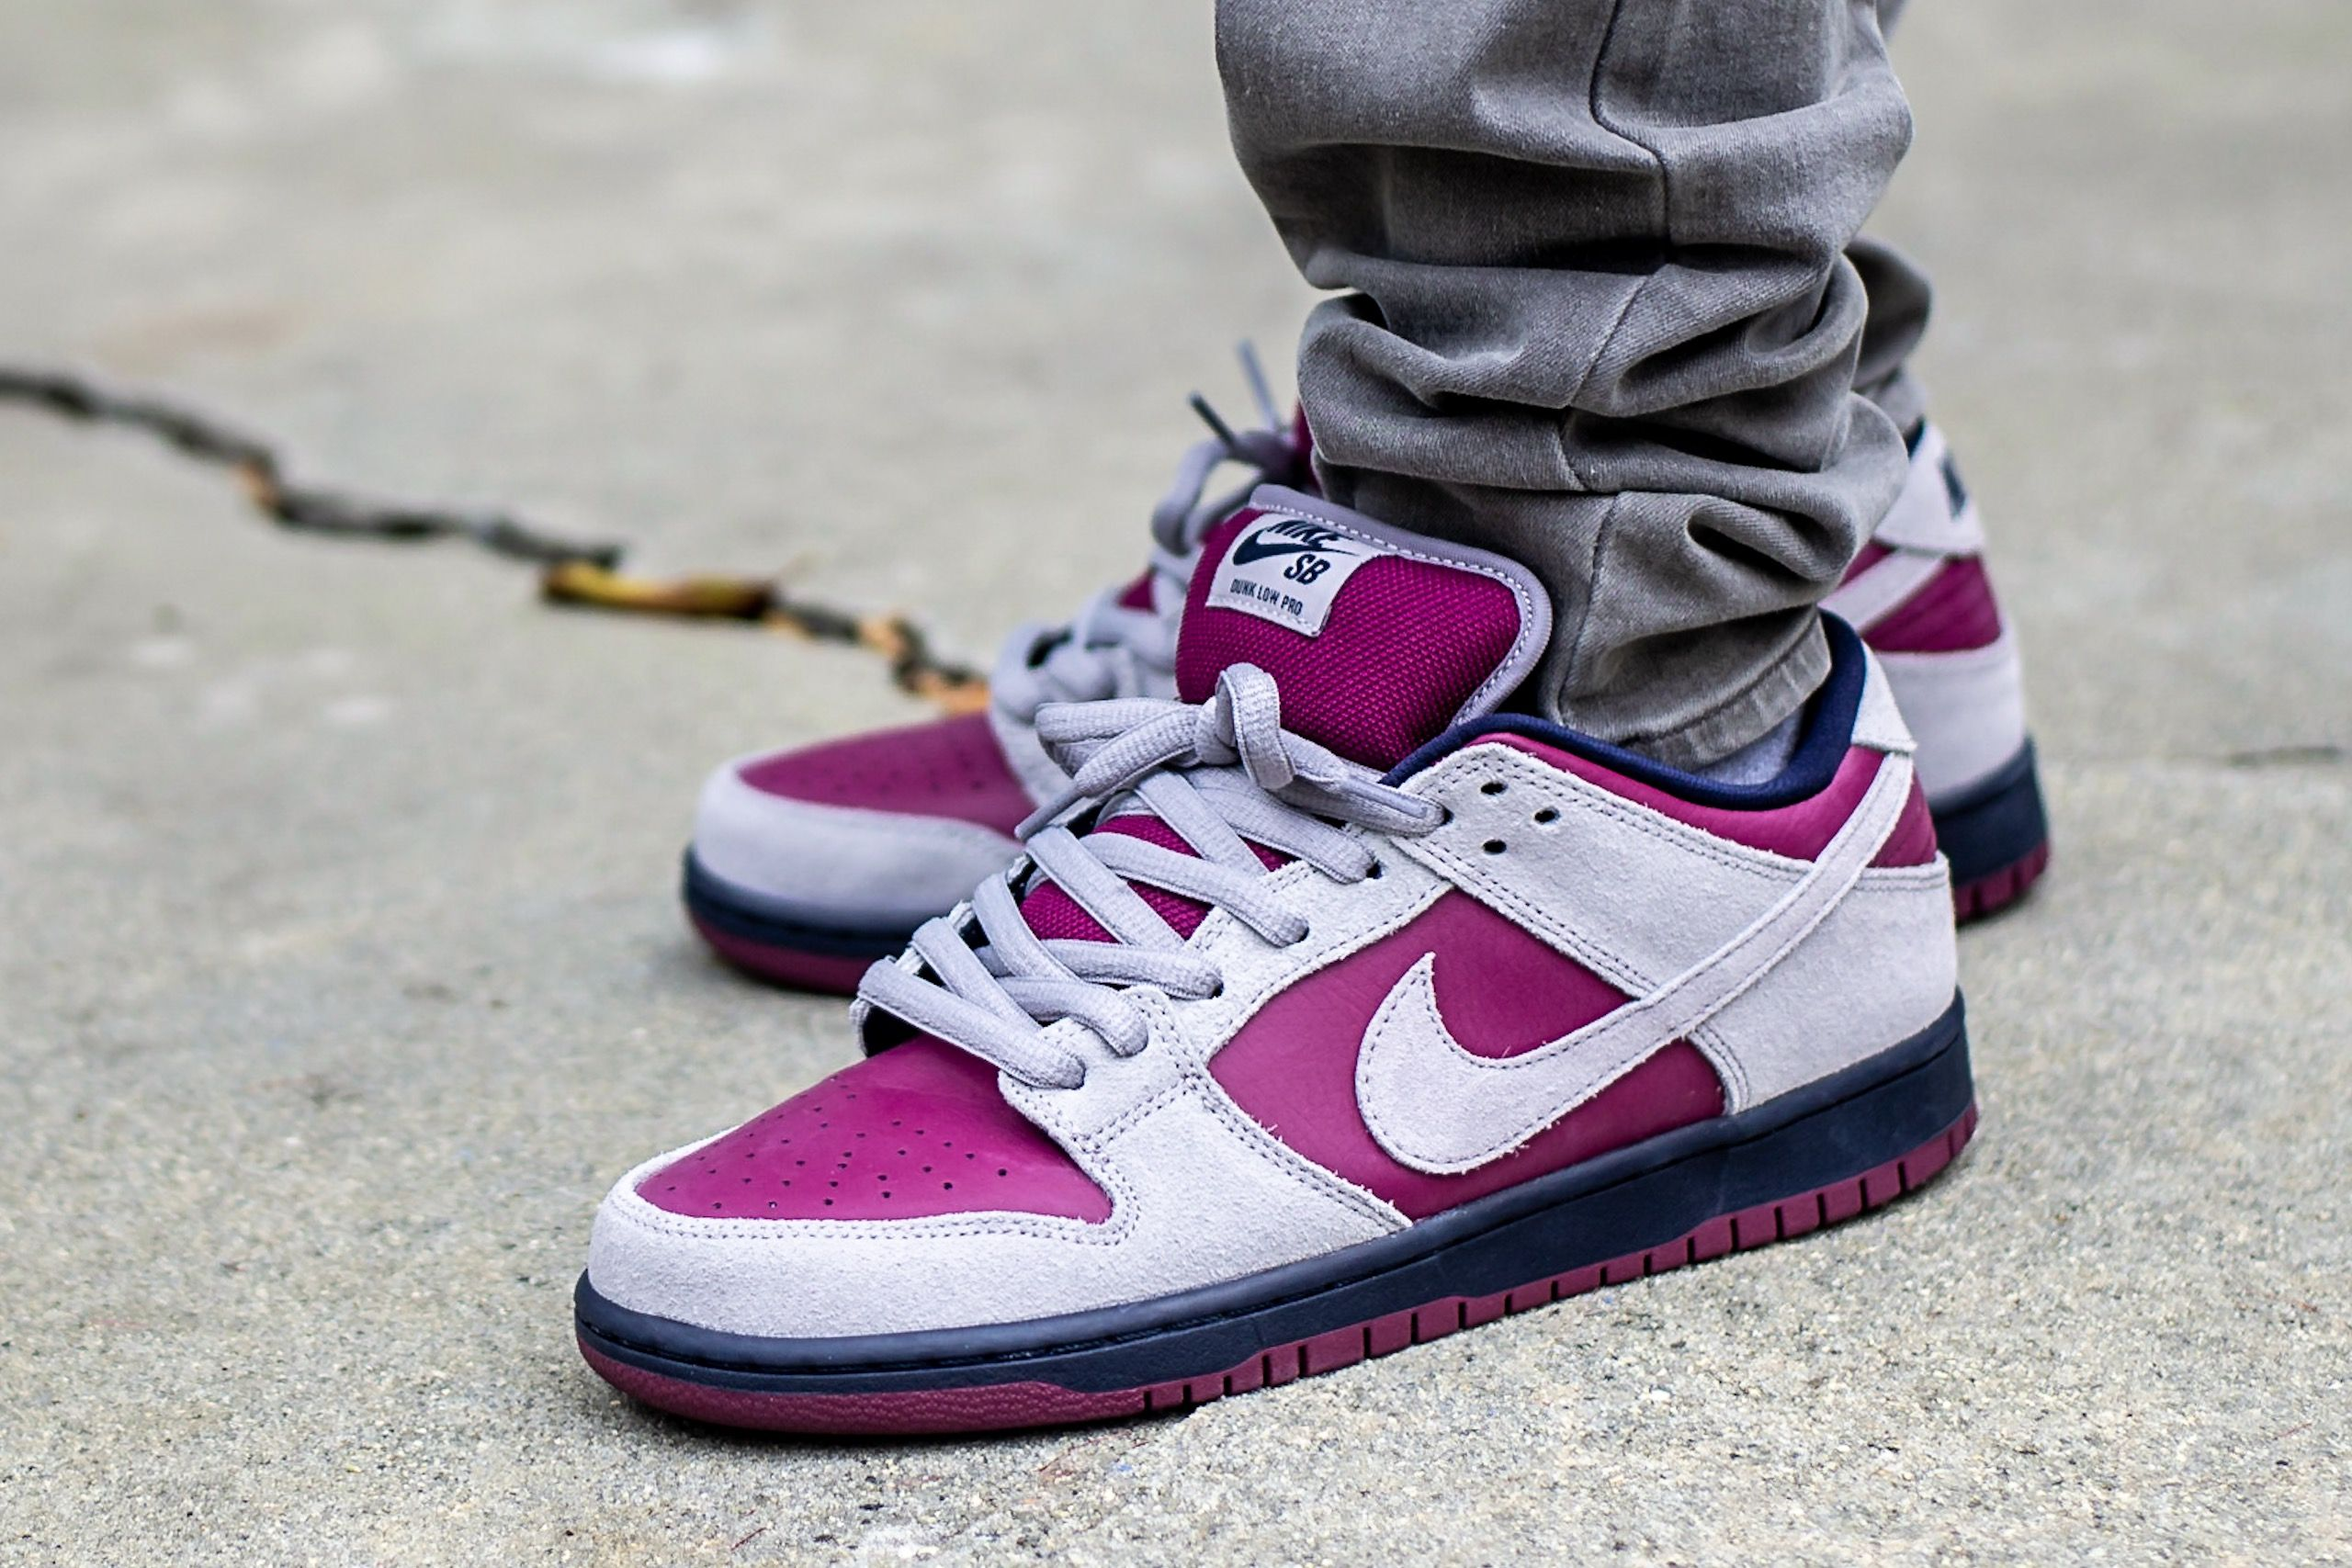 Nike Dunk Low SB True Berry On Feet Sneaker Review | Nice shoes